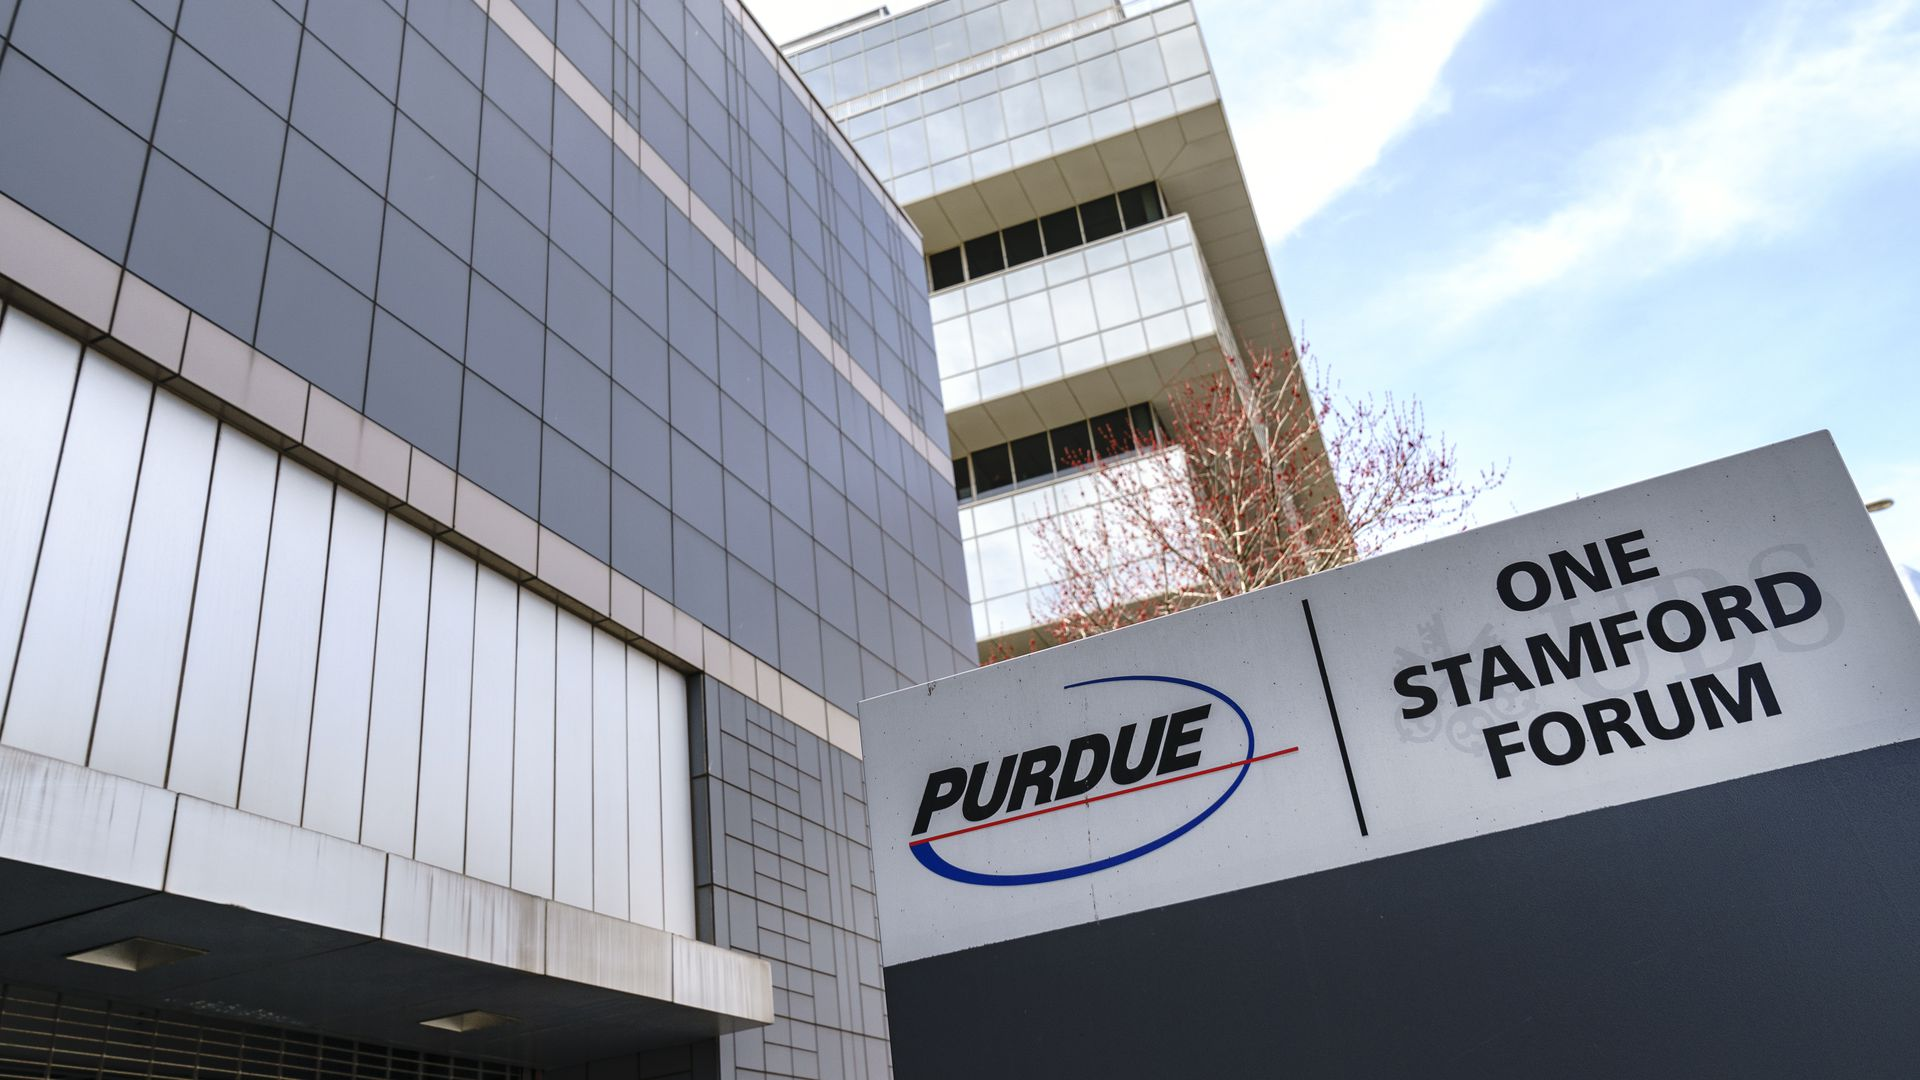 Purdue logo and sign outside of a headquarters building.